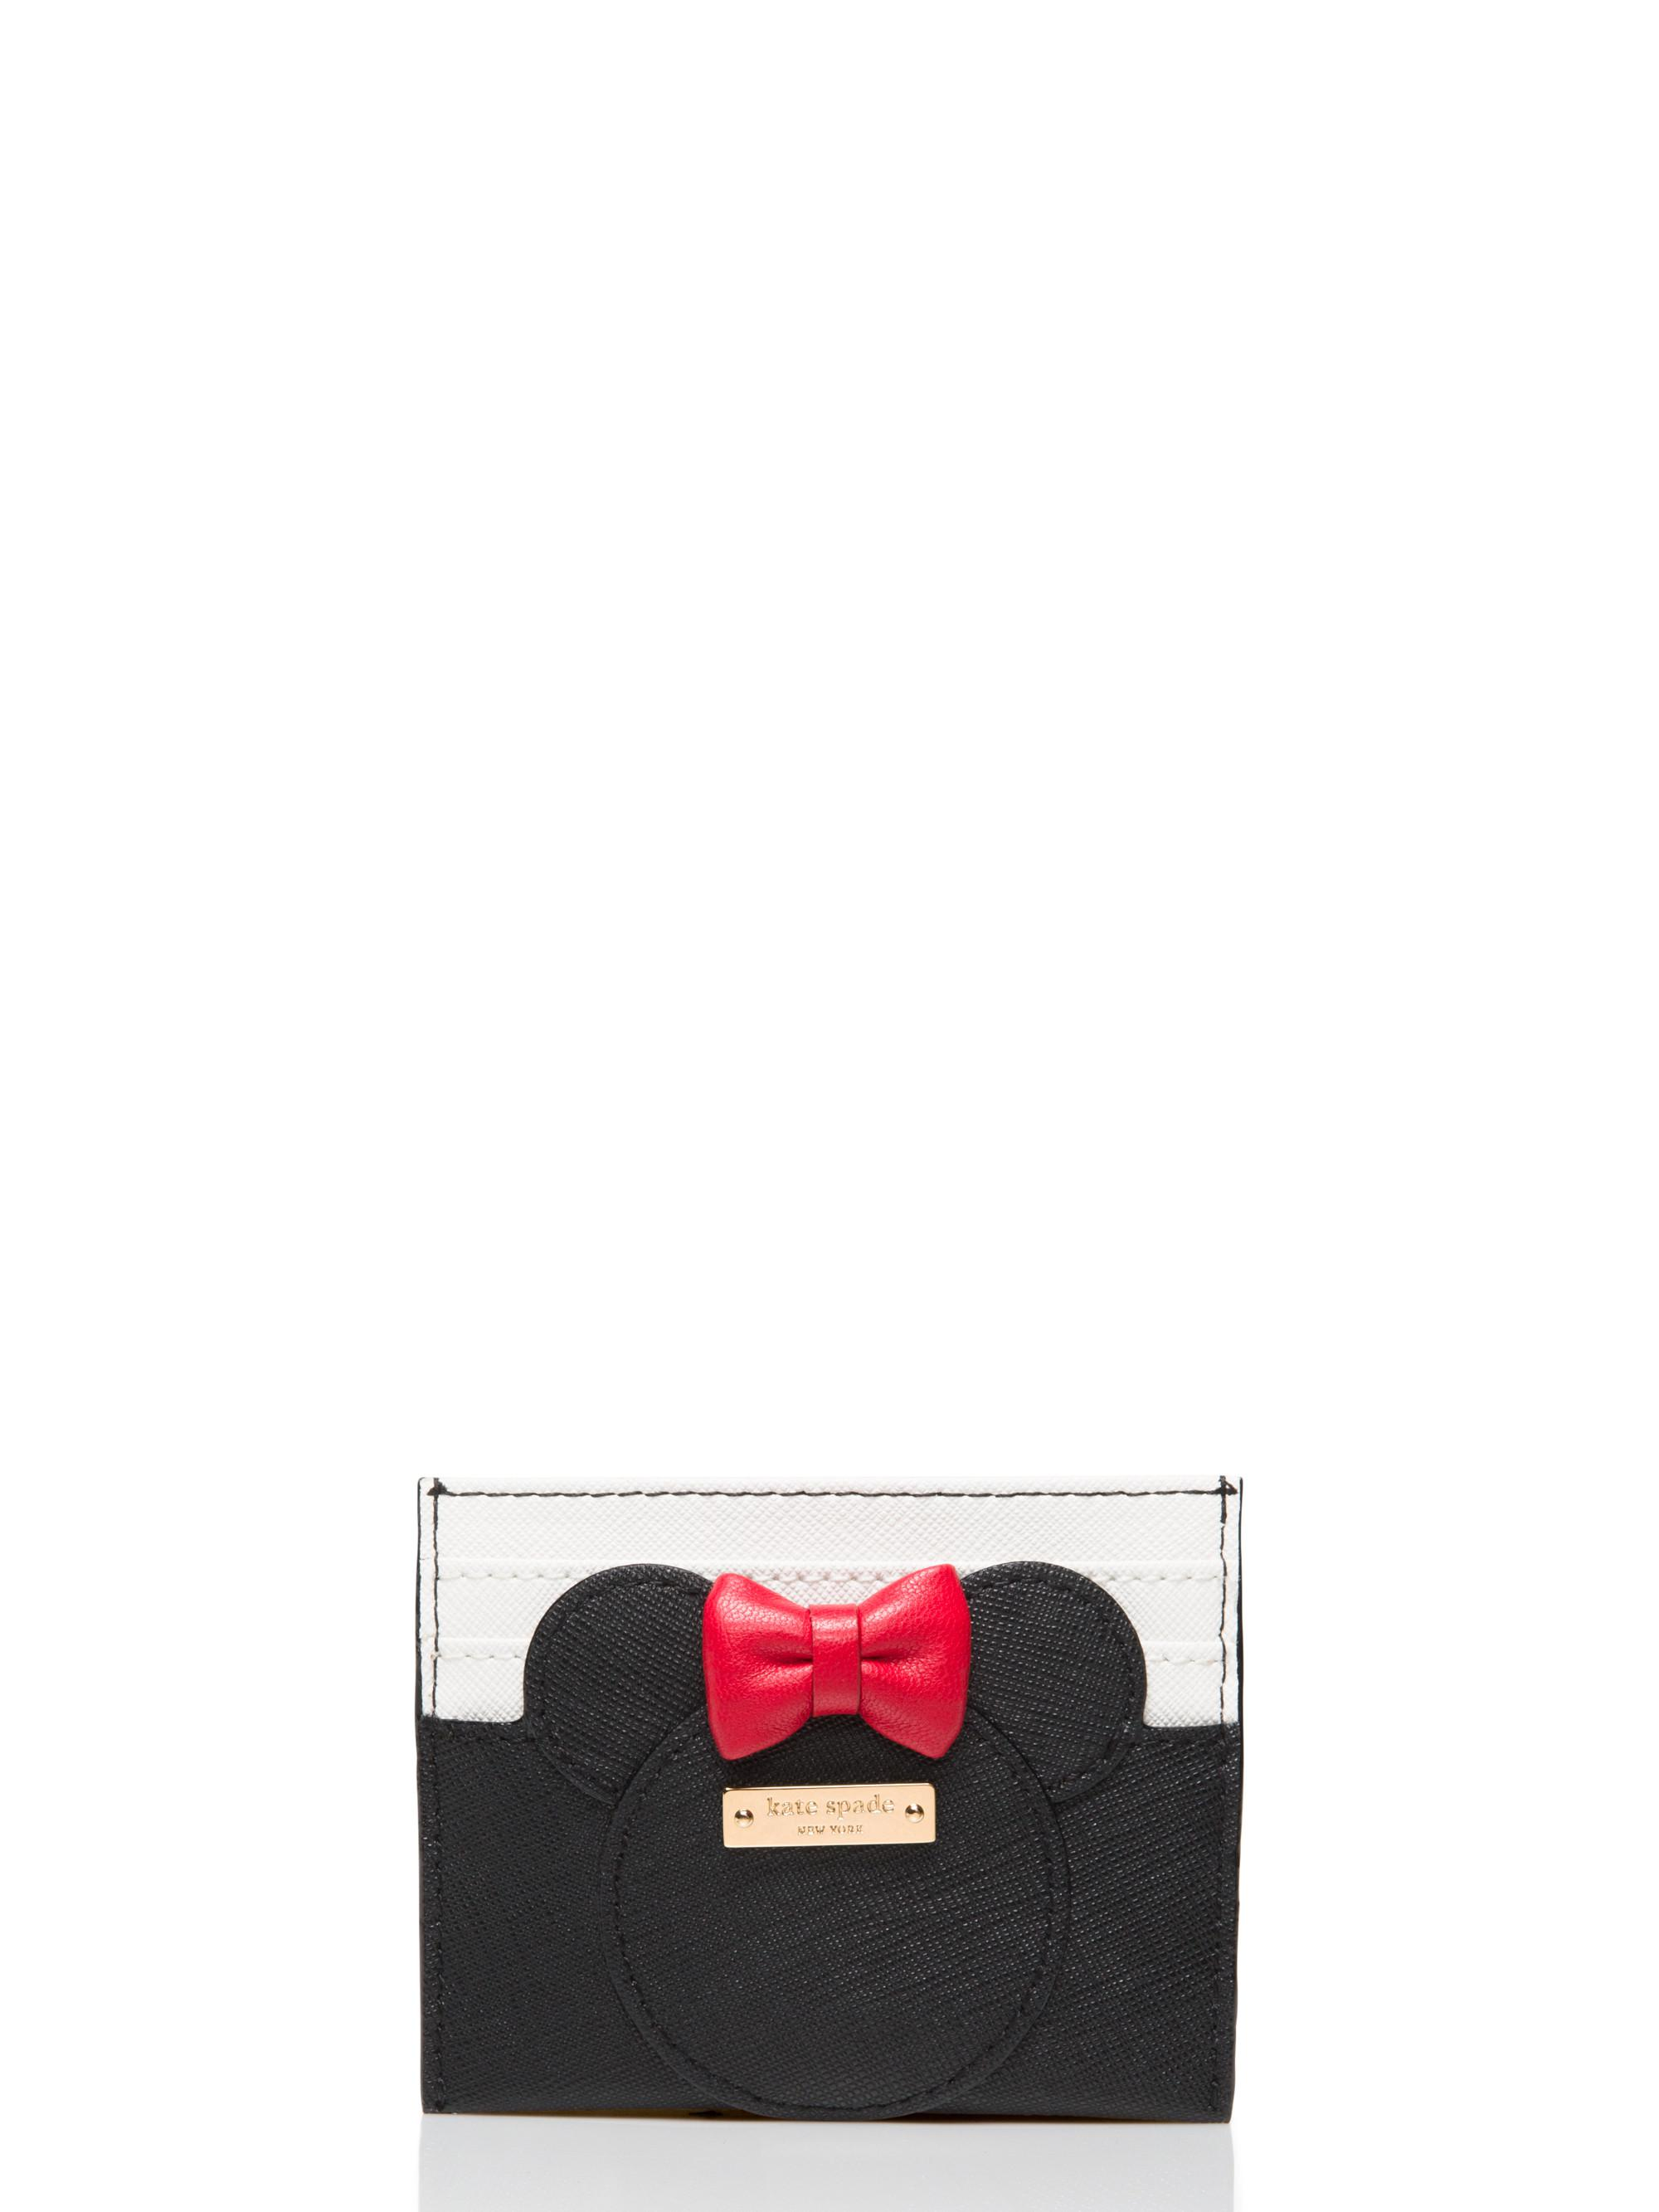 Lyst - Kate Spade For Minnie Mouse Minnie Card Case